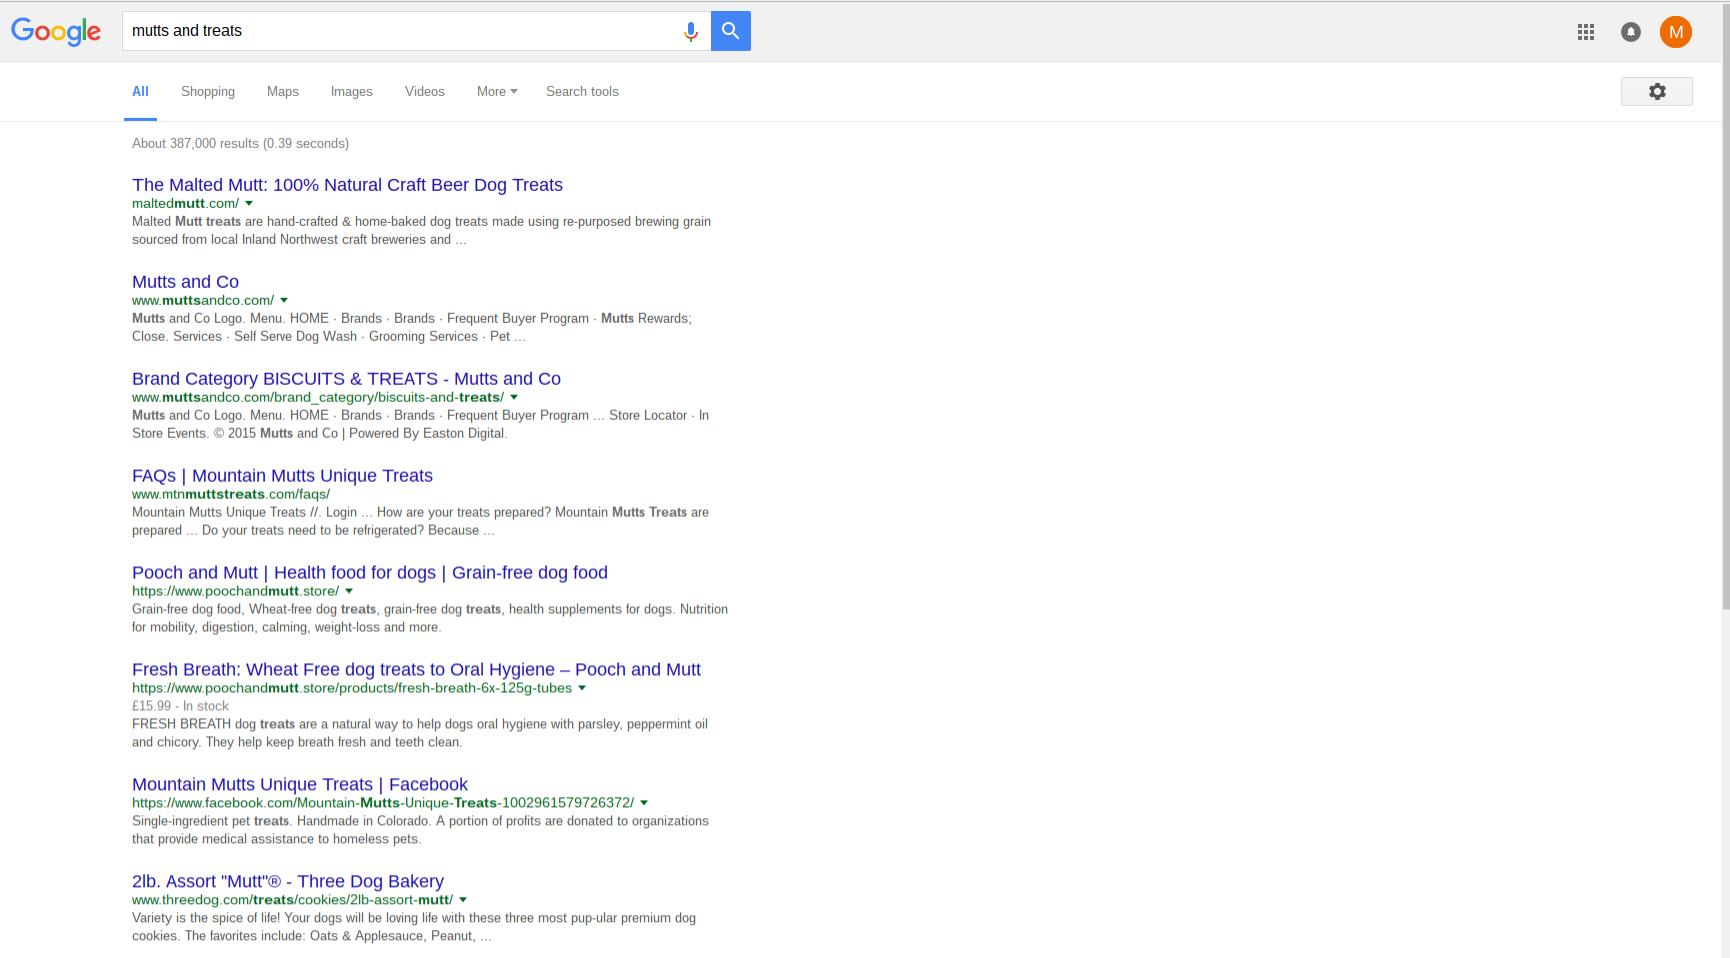 google-search-on-mutts-and-treats.png